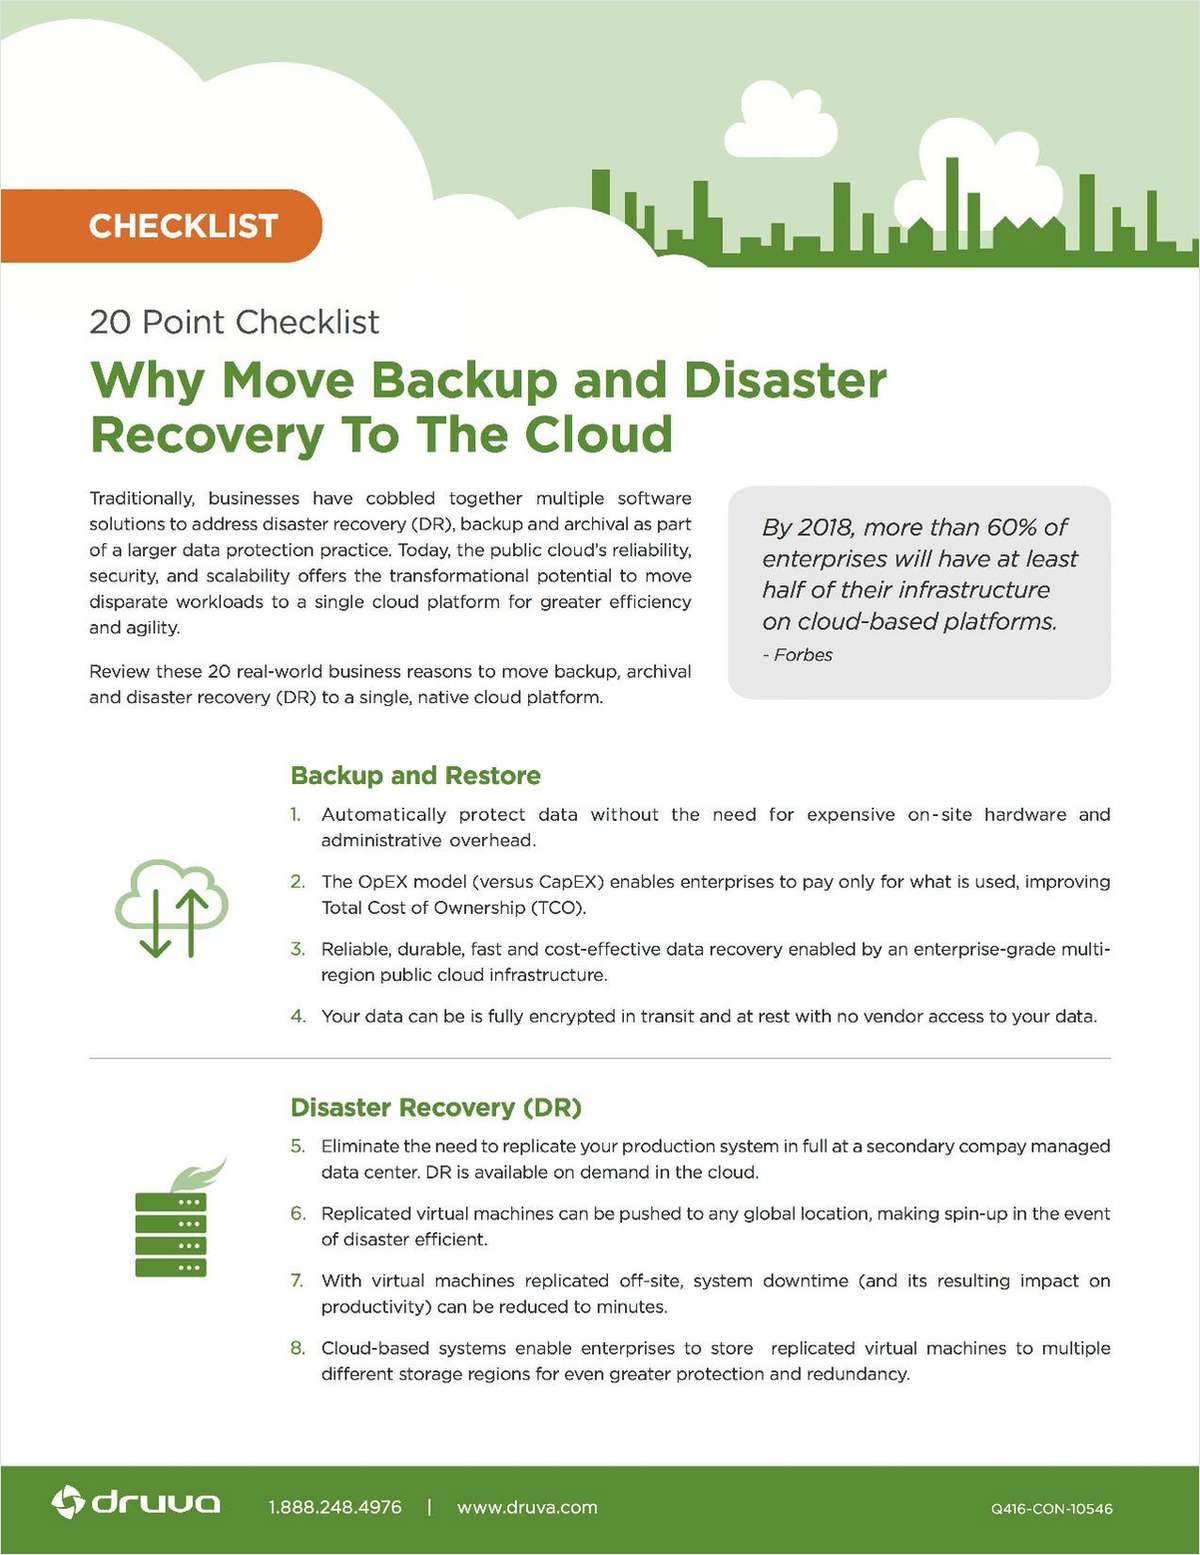 Checklist: Why Move Backup and Disaster Recovery to the Cloud